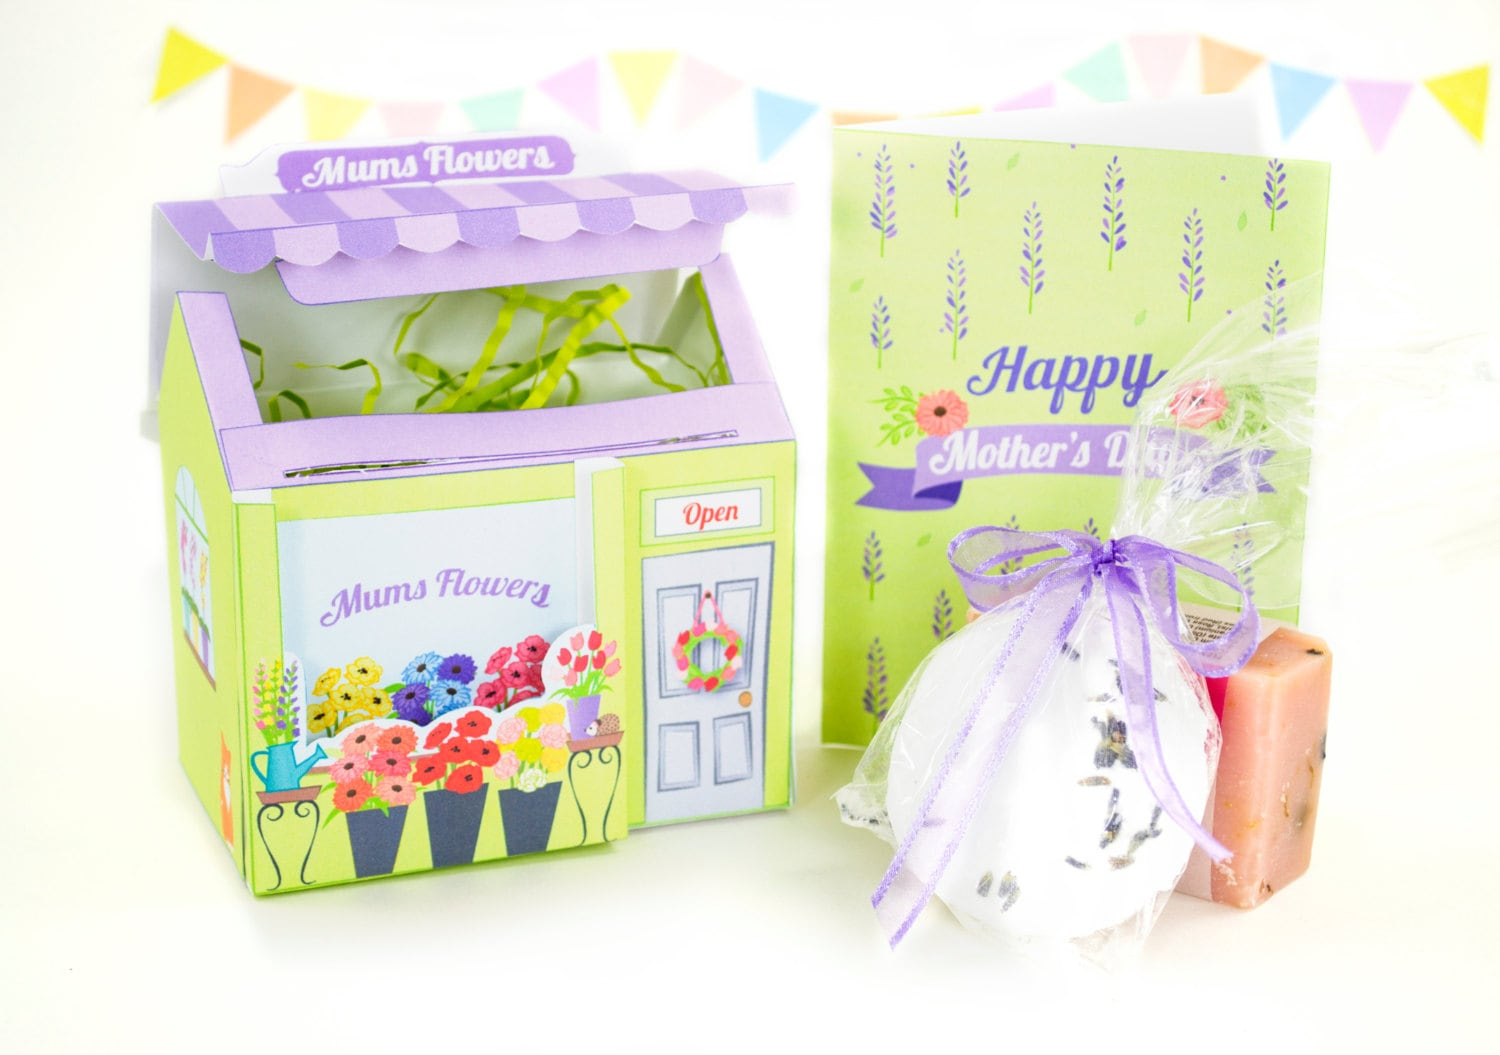 Diy Mother S Day Card And Gift Box Set Printable Mother S Day Card Gift For Her Flower Shop Gift Box Diy Floral Giftwrap